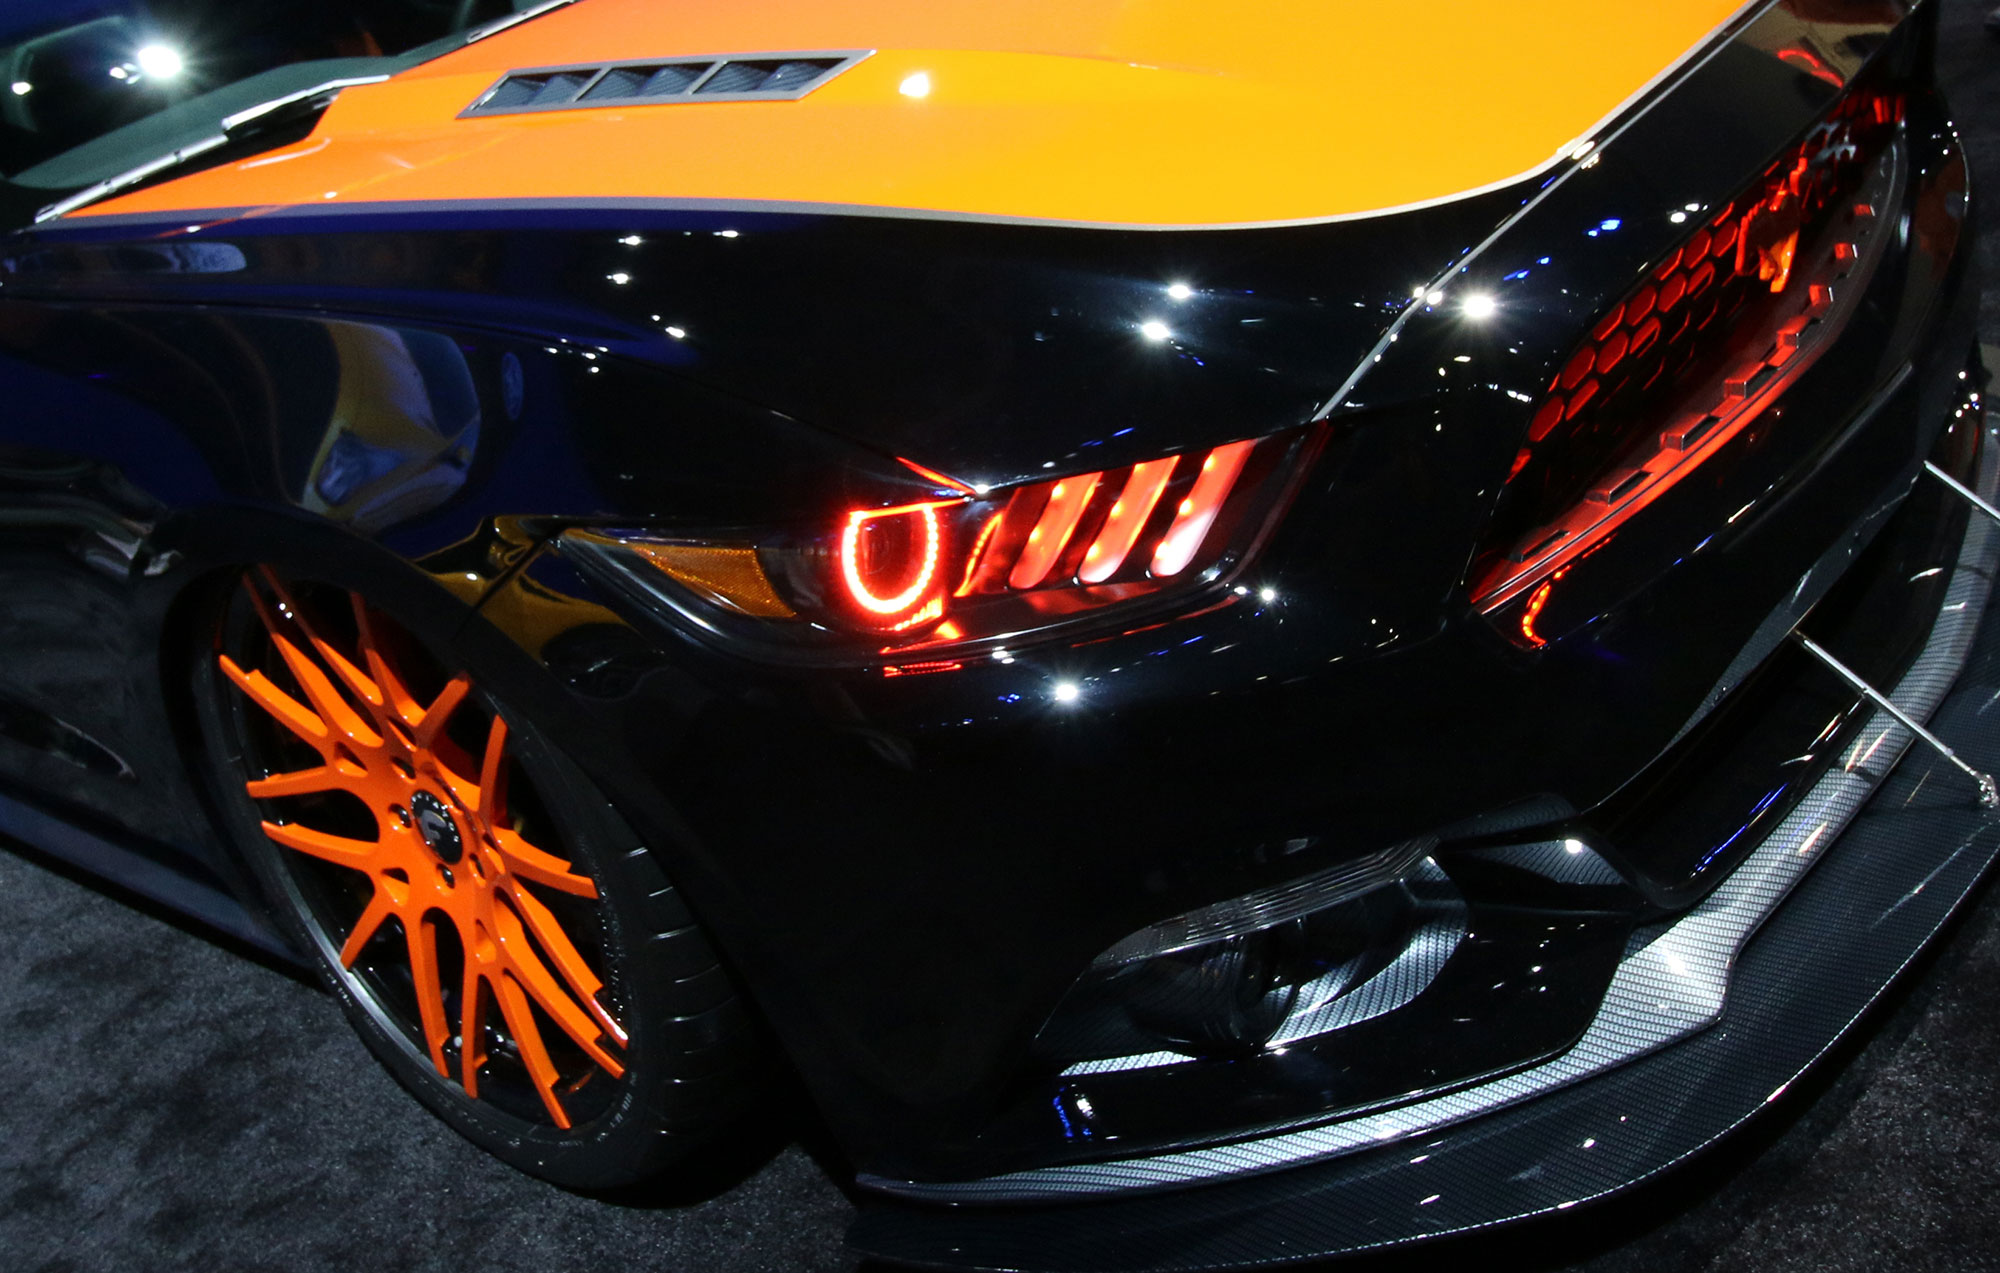 Oracle headlights for S550